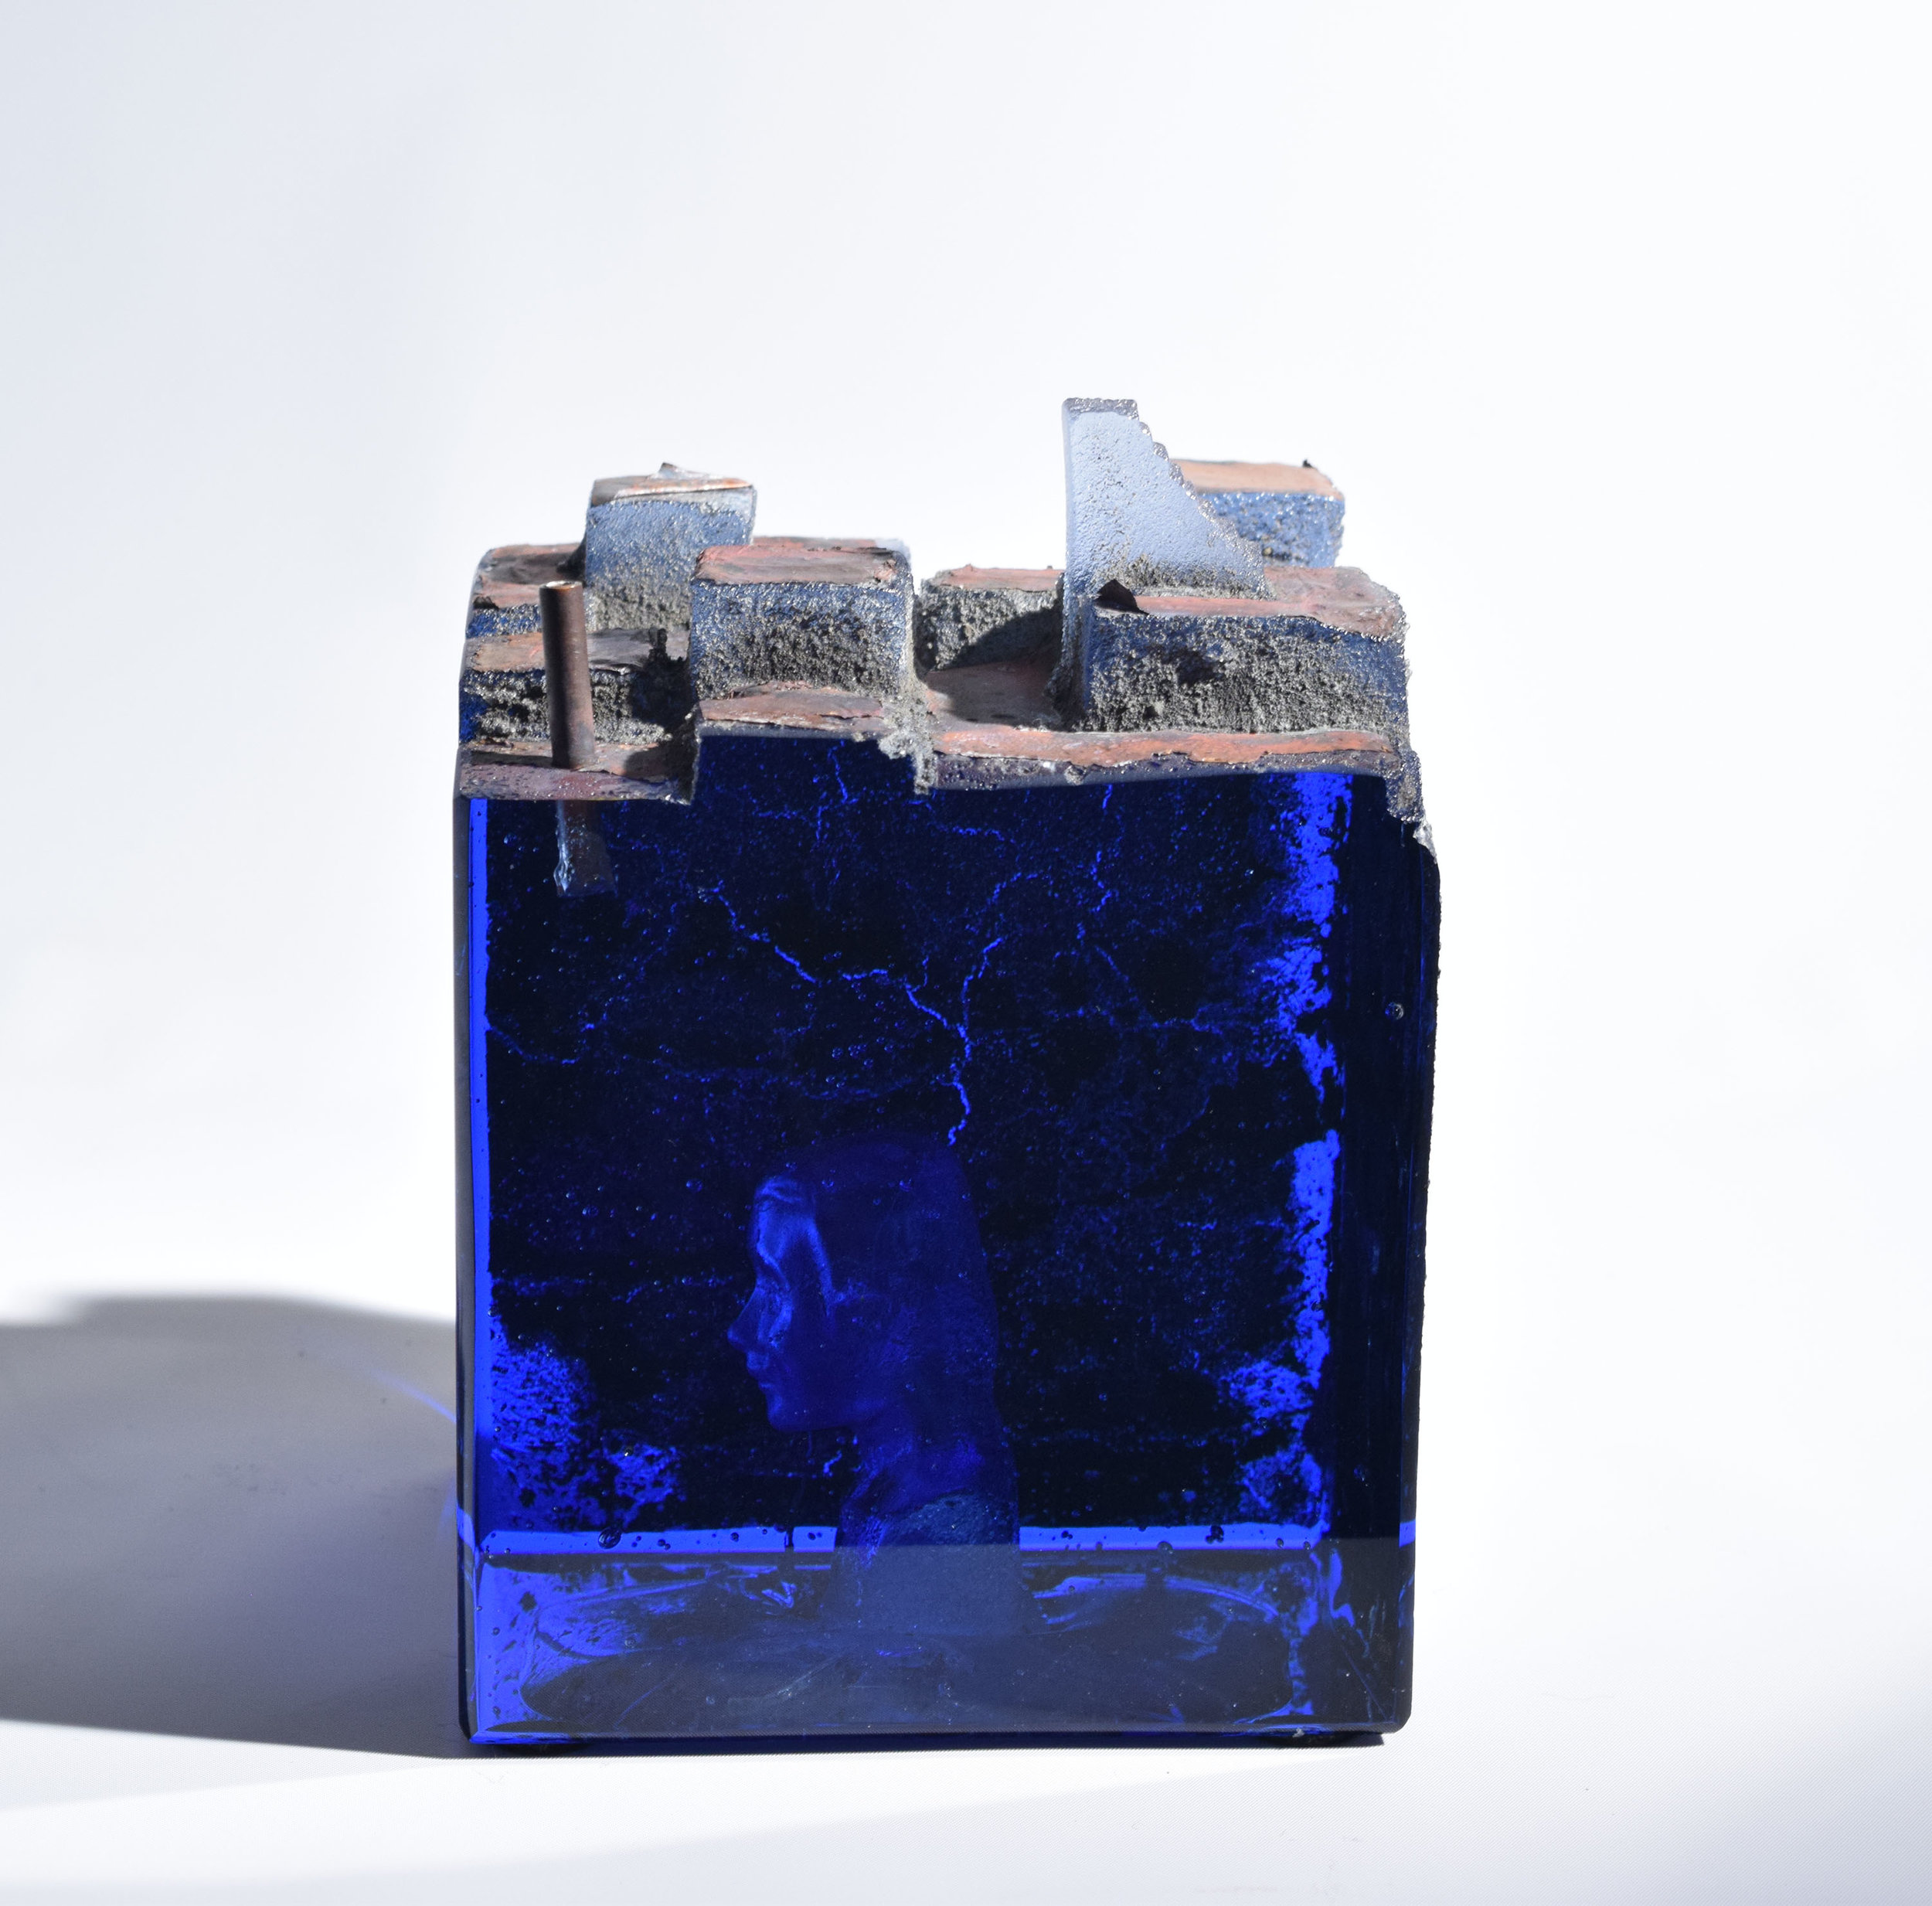 Landscape,  2019, Sand cast glass, 8 x 5.7 x 5.7""